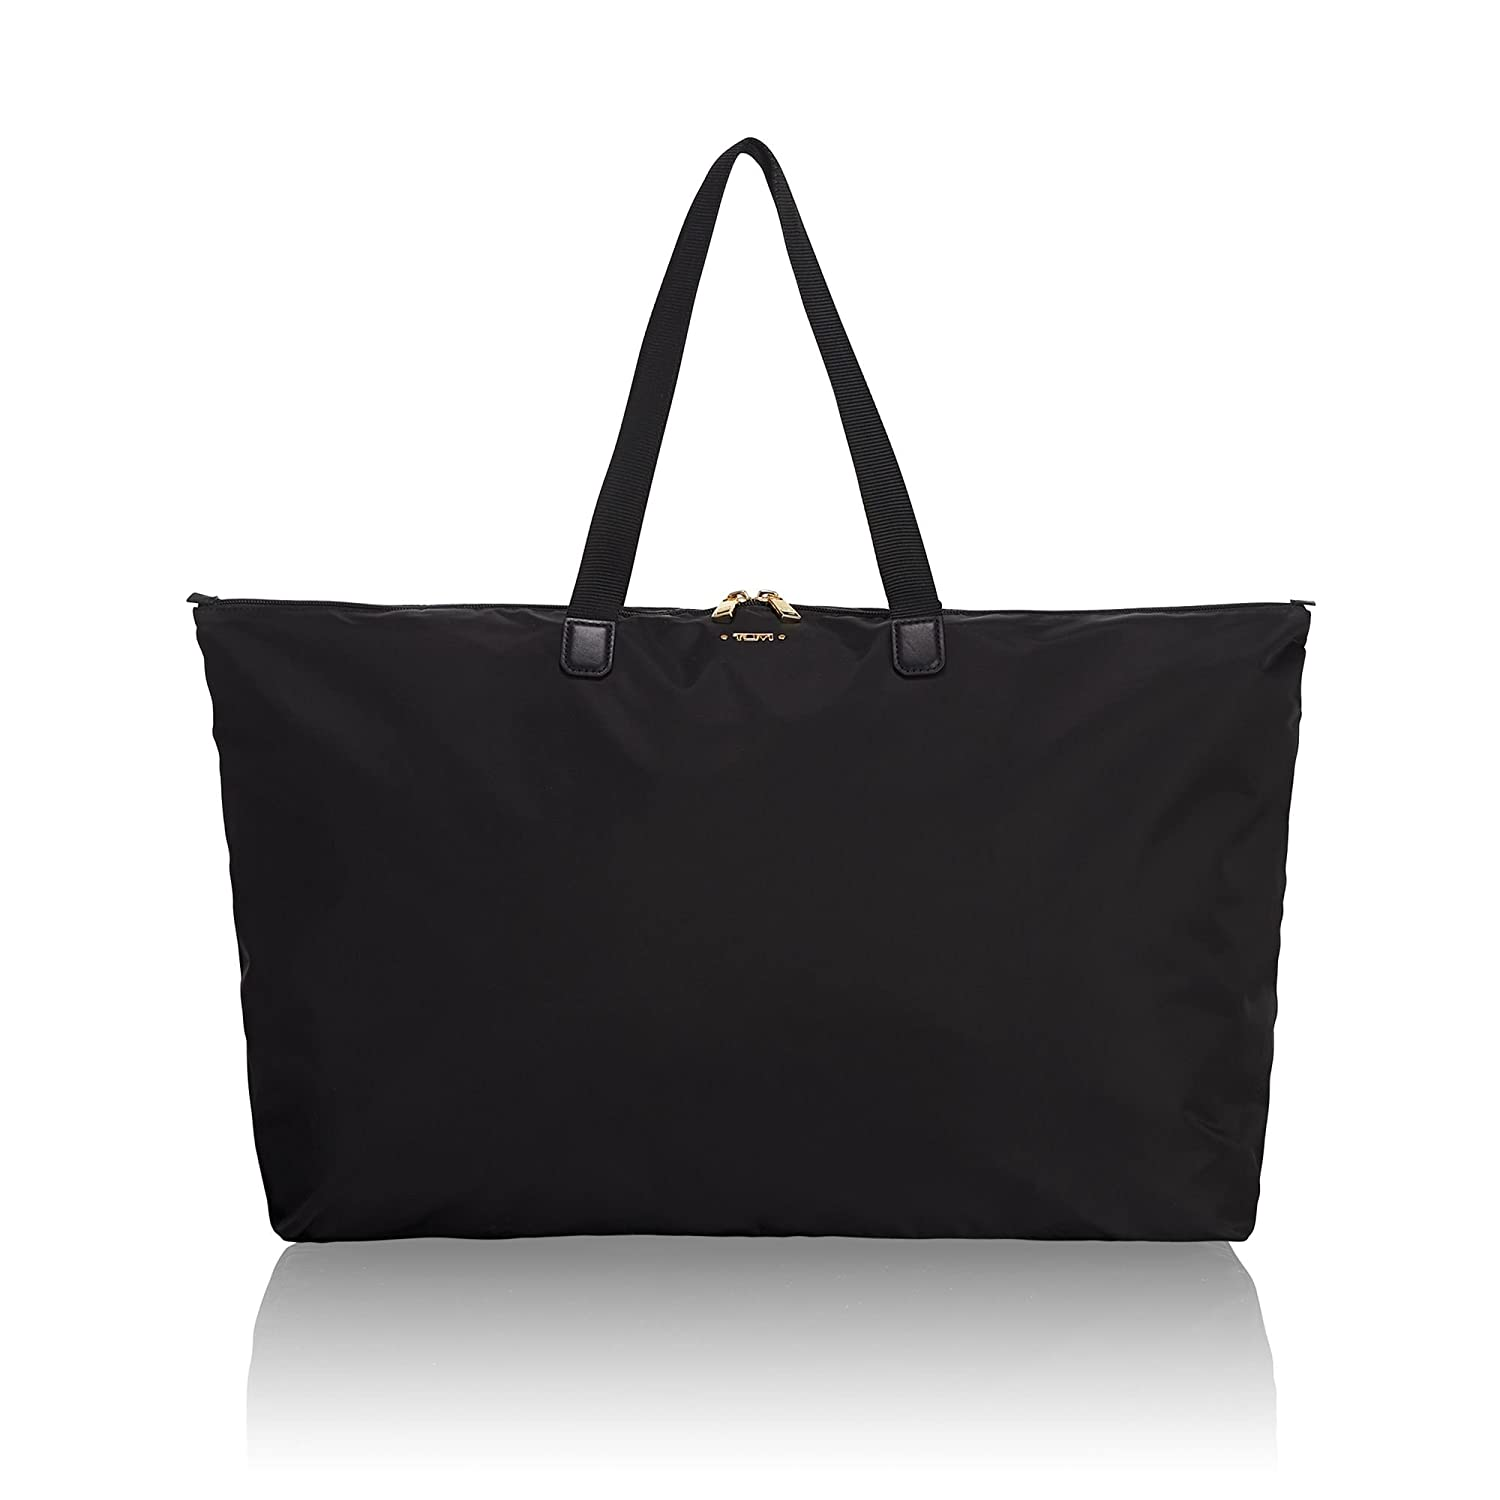 e4aae6558 Amazon.com: TUMI - Voyageur Just In Case Tote Bag - Lightweight Packable  Foldable Travel Bag for Women - Black: Clothing